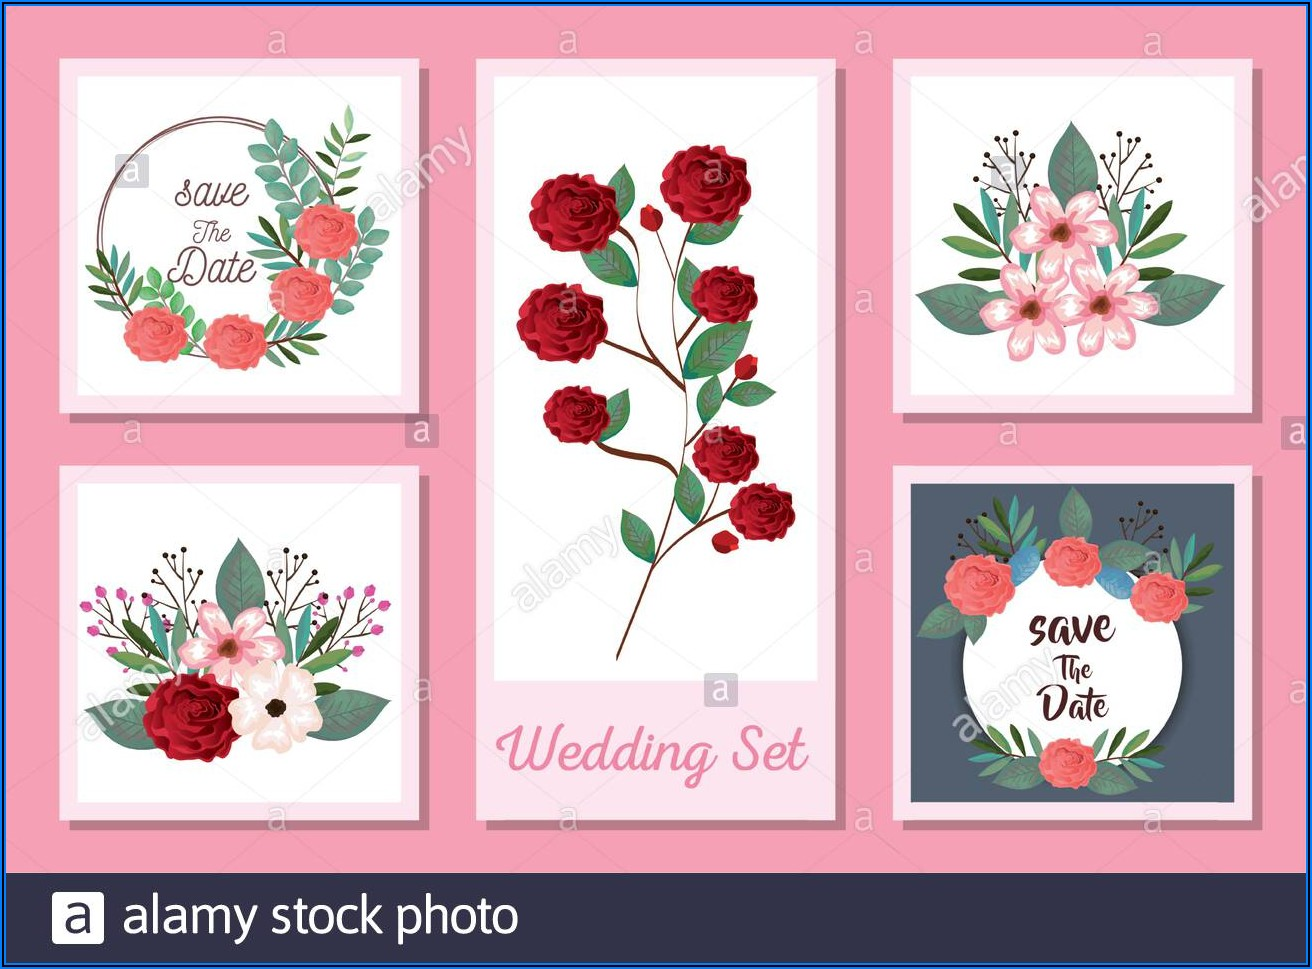 Flowers Wedding Invitation Designs